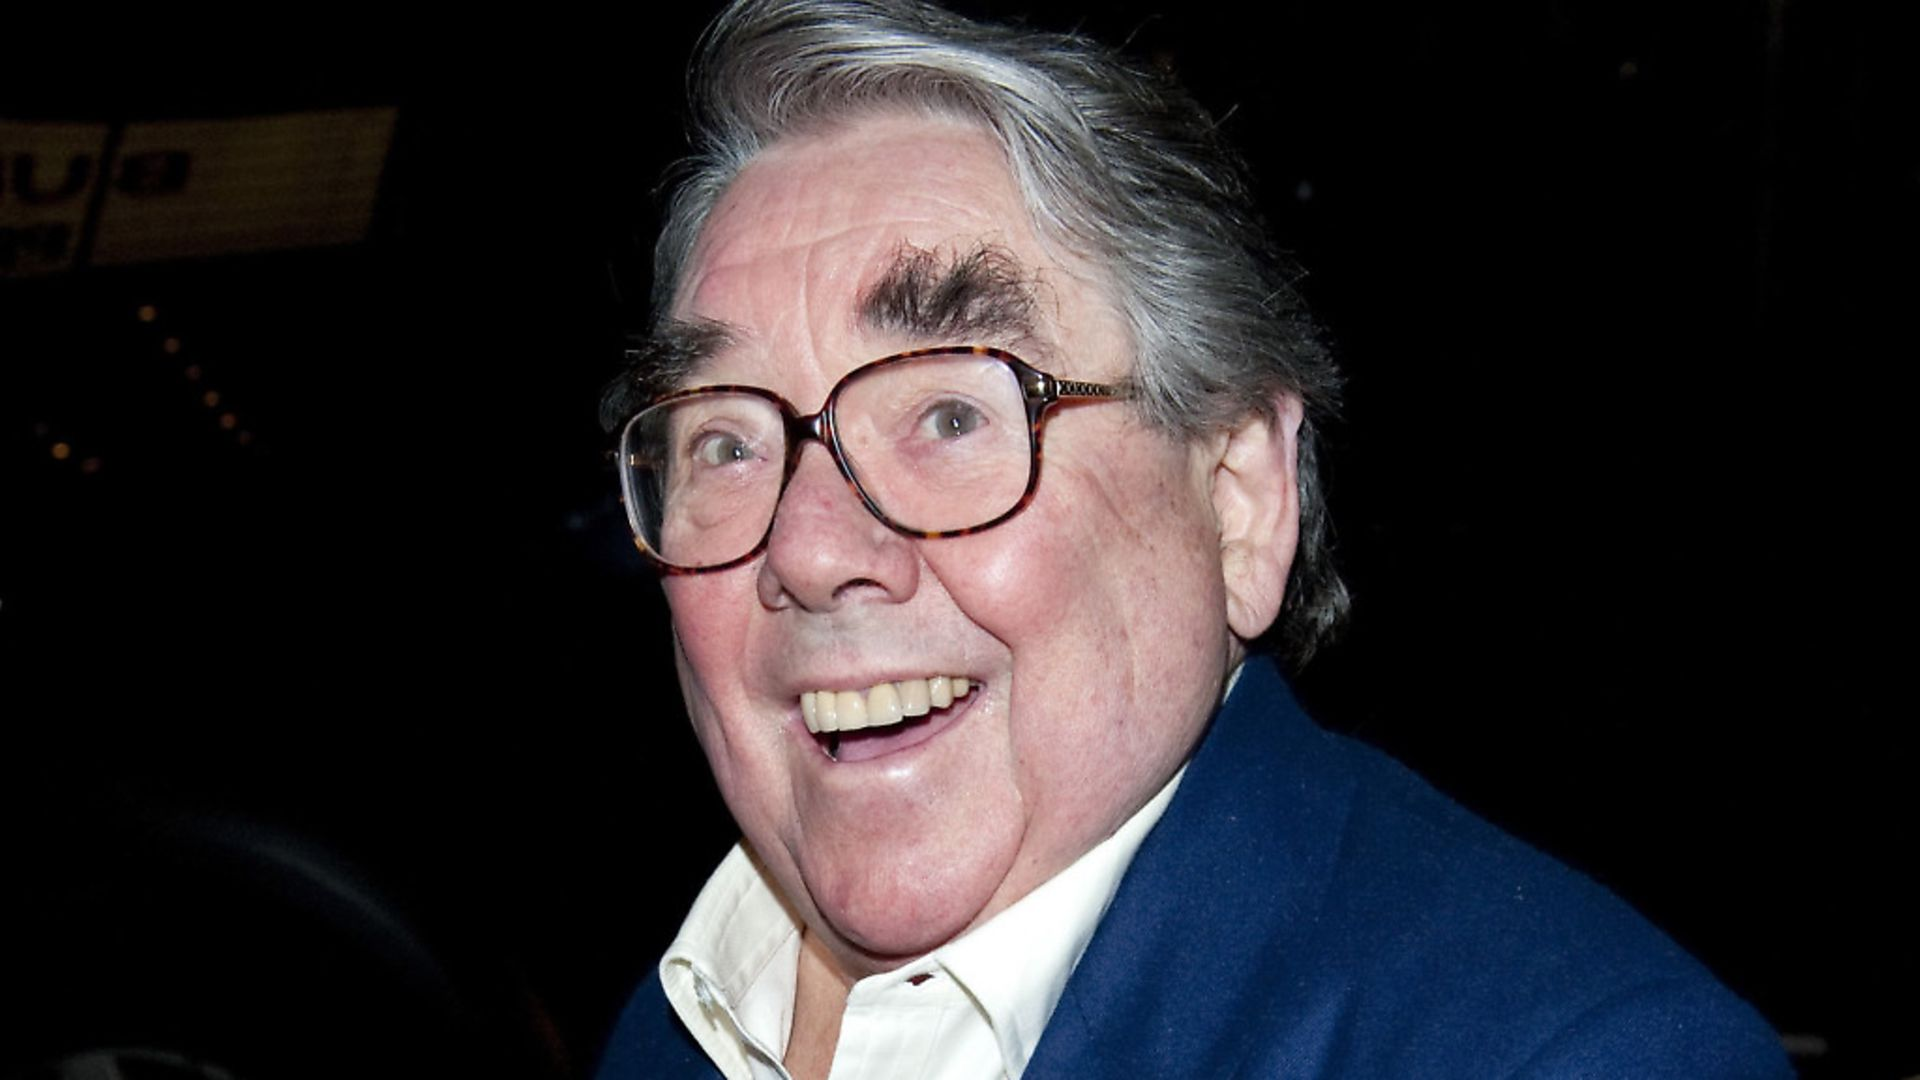 Ronnie Corbett Arriving For The Burke And Hare Premiere As Part Of The 54Th Bfi London Film Festival At The Curzon Cinema In Chelsea, London. (Photo by Mark Cuthbert/UK Press via Getty Images) - Credit: UK Press via Getty Images